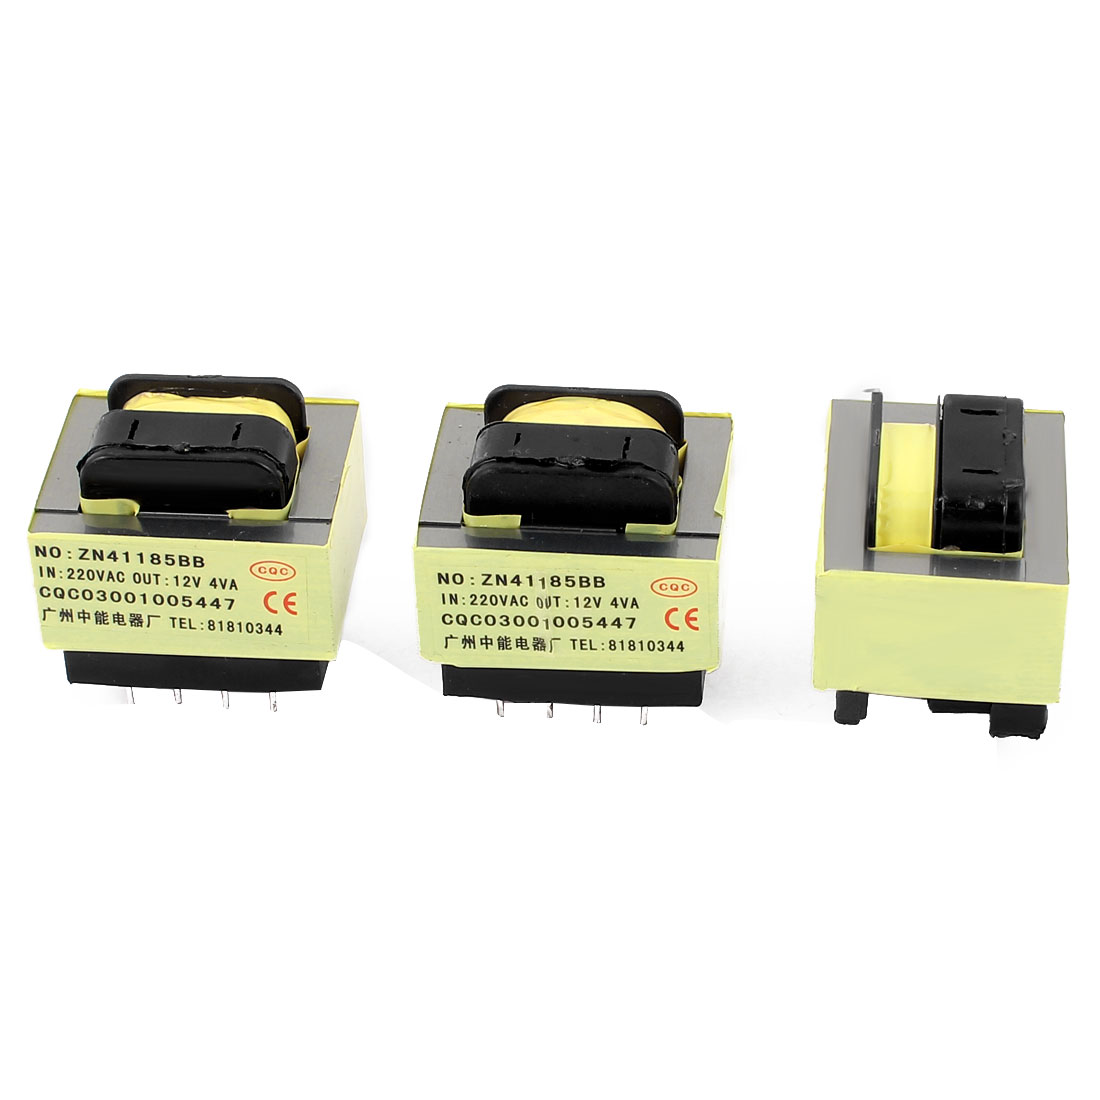 3 Pcs 220V Input 12V 4VA Output Yellow Red Ferrite Core Power Transformer w 5 Terminals